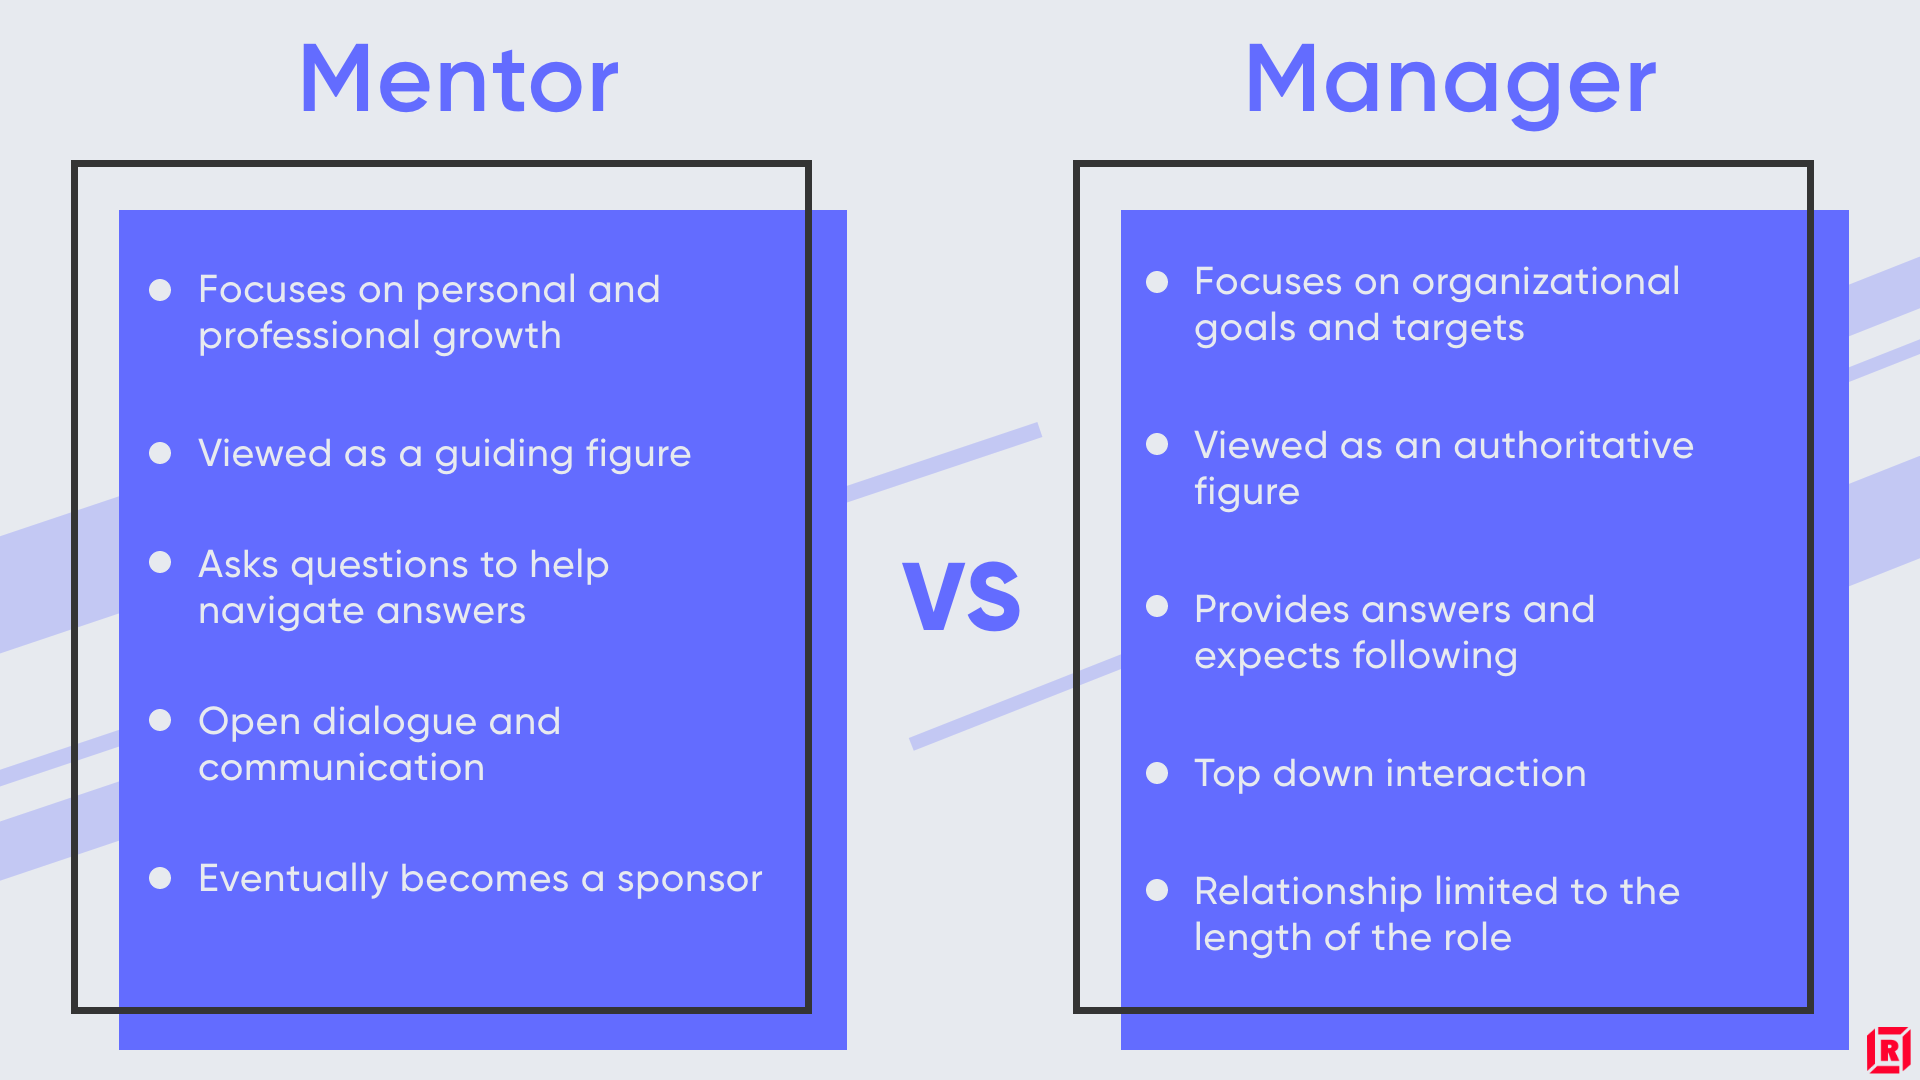 mentors over managers